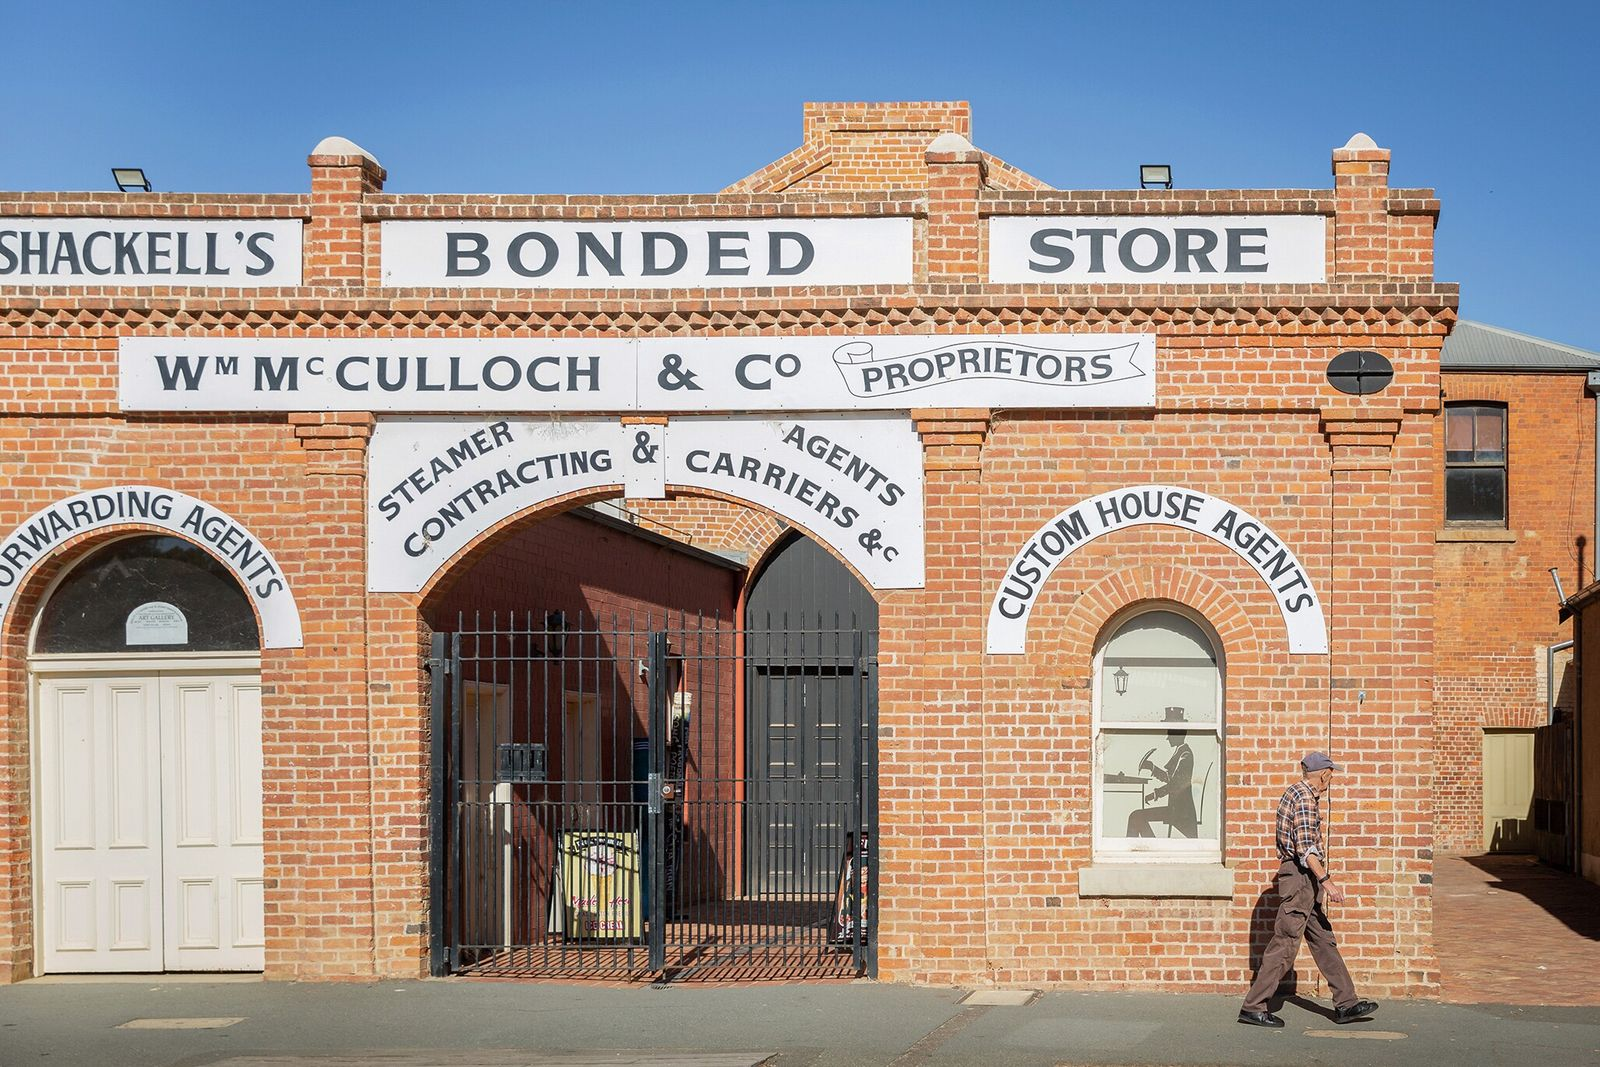 The Port of Echuca Discovery Centre has an outdoor museum and visitor centre.